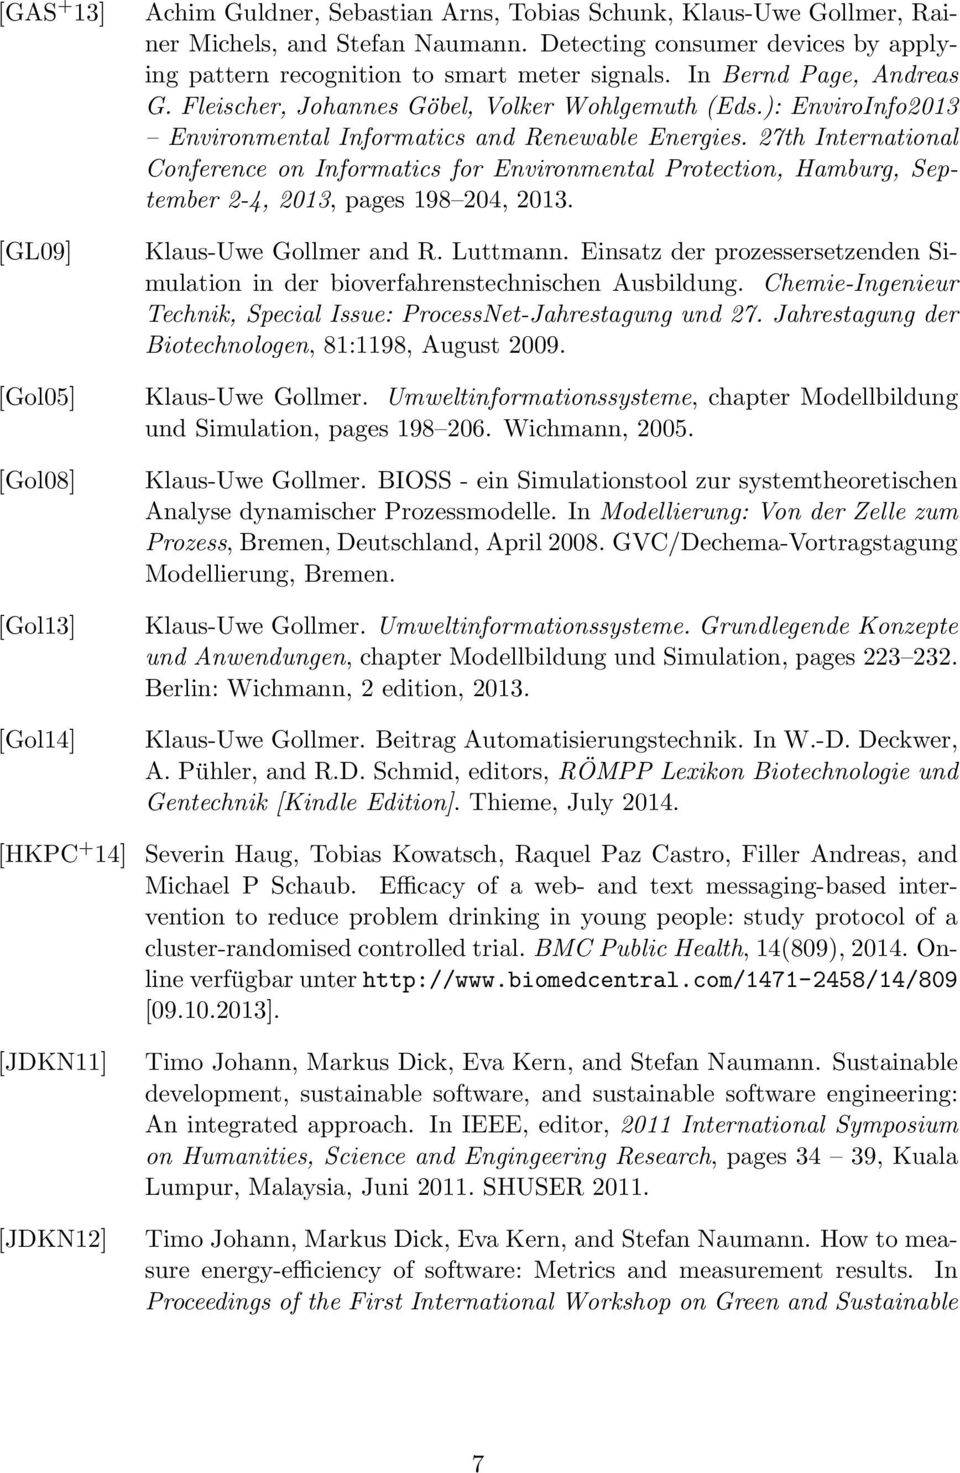 ): EnviroInfo2013 Environmental Informatics and Renewable Energies. 27th International Conference on Informatics for Environmental Protection, Hamburg, September 2-4, 2013, pages 198 204, 2013.